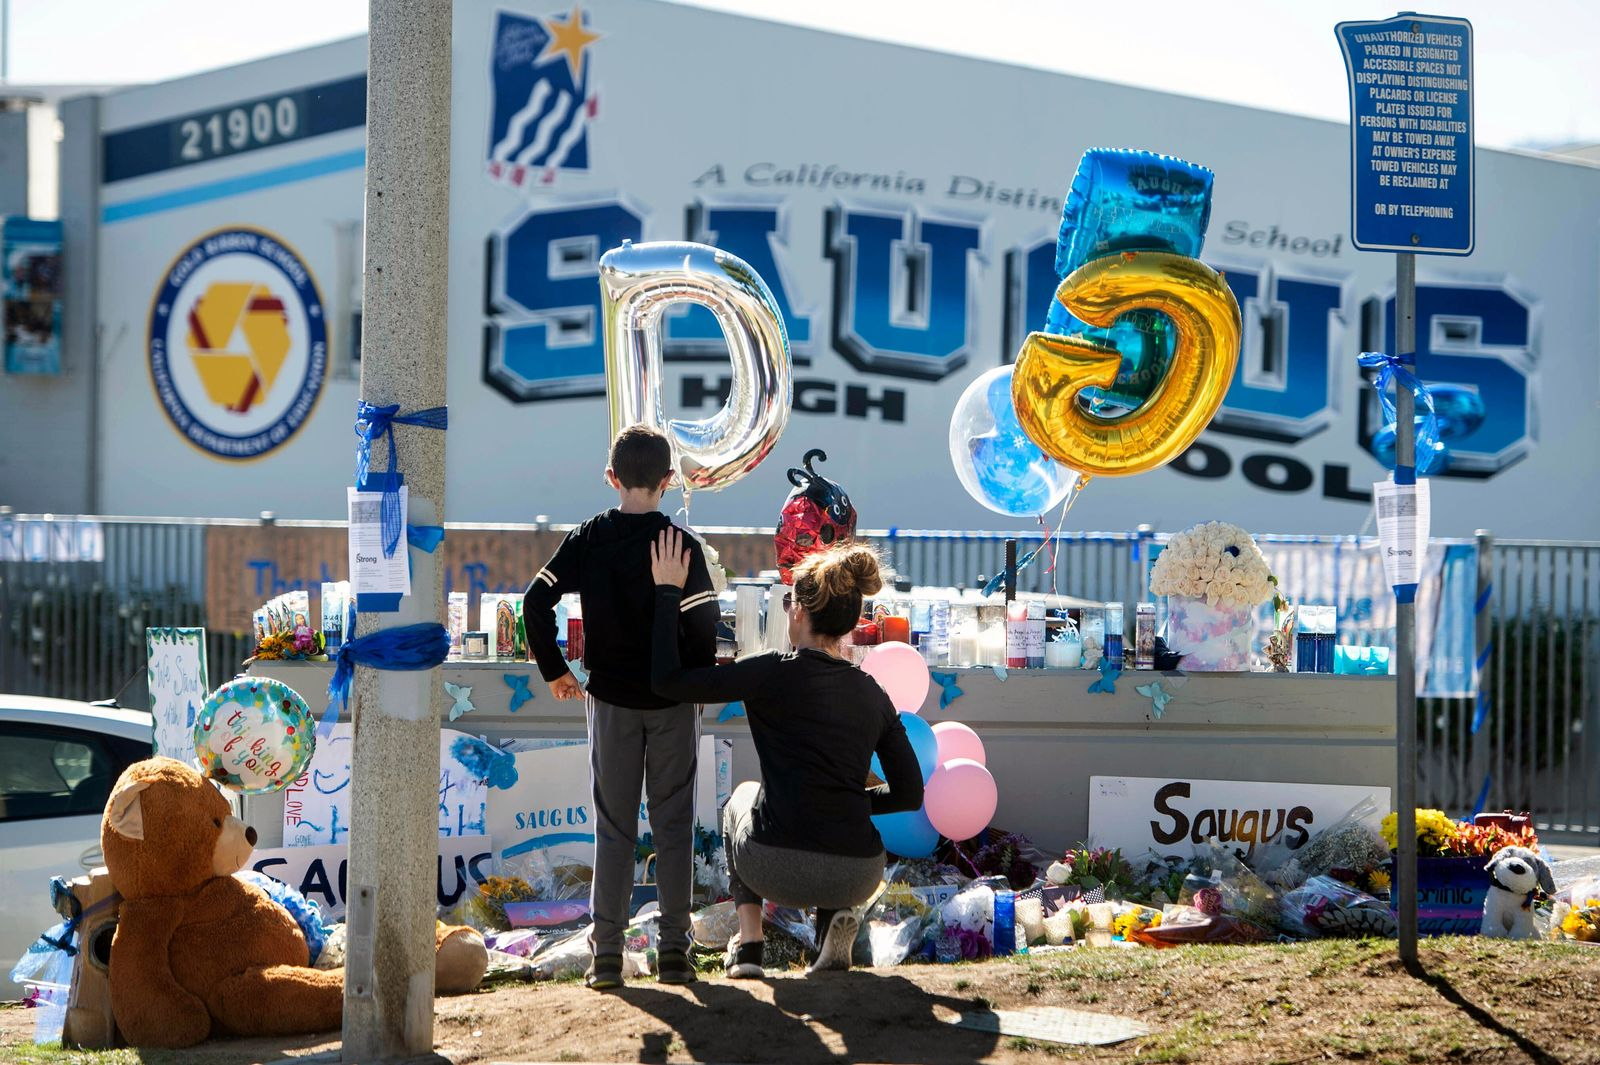 Michelle Bosshard and her 9-year-old son Lucas visit a memorial, Monday, Nov. 18, 2019, for two students killed during a shooting at Saugus High School in Santa Clarita, Calif., days before. The Bosshards, who live in the neighborhood, know a handful of kids who were hiding during the shooting. The students will return to school on Dec. 2. (Sarah Reingewirtz/The Orange County Register via AP)